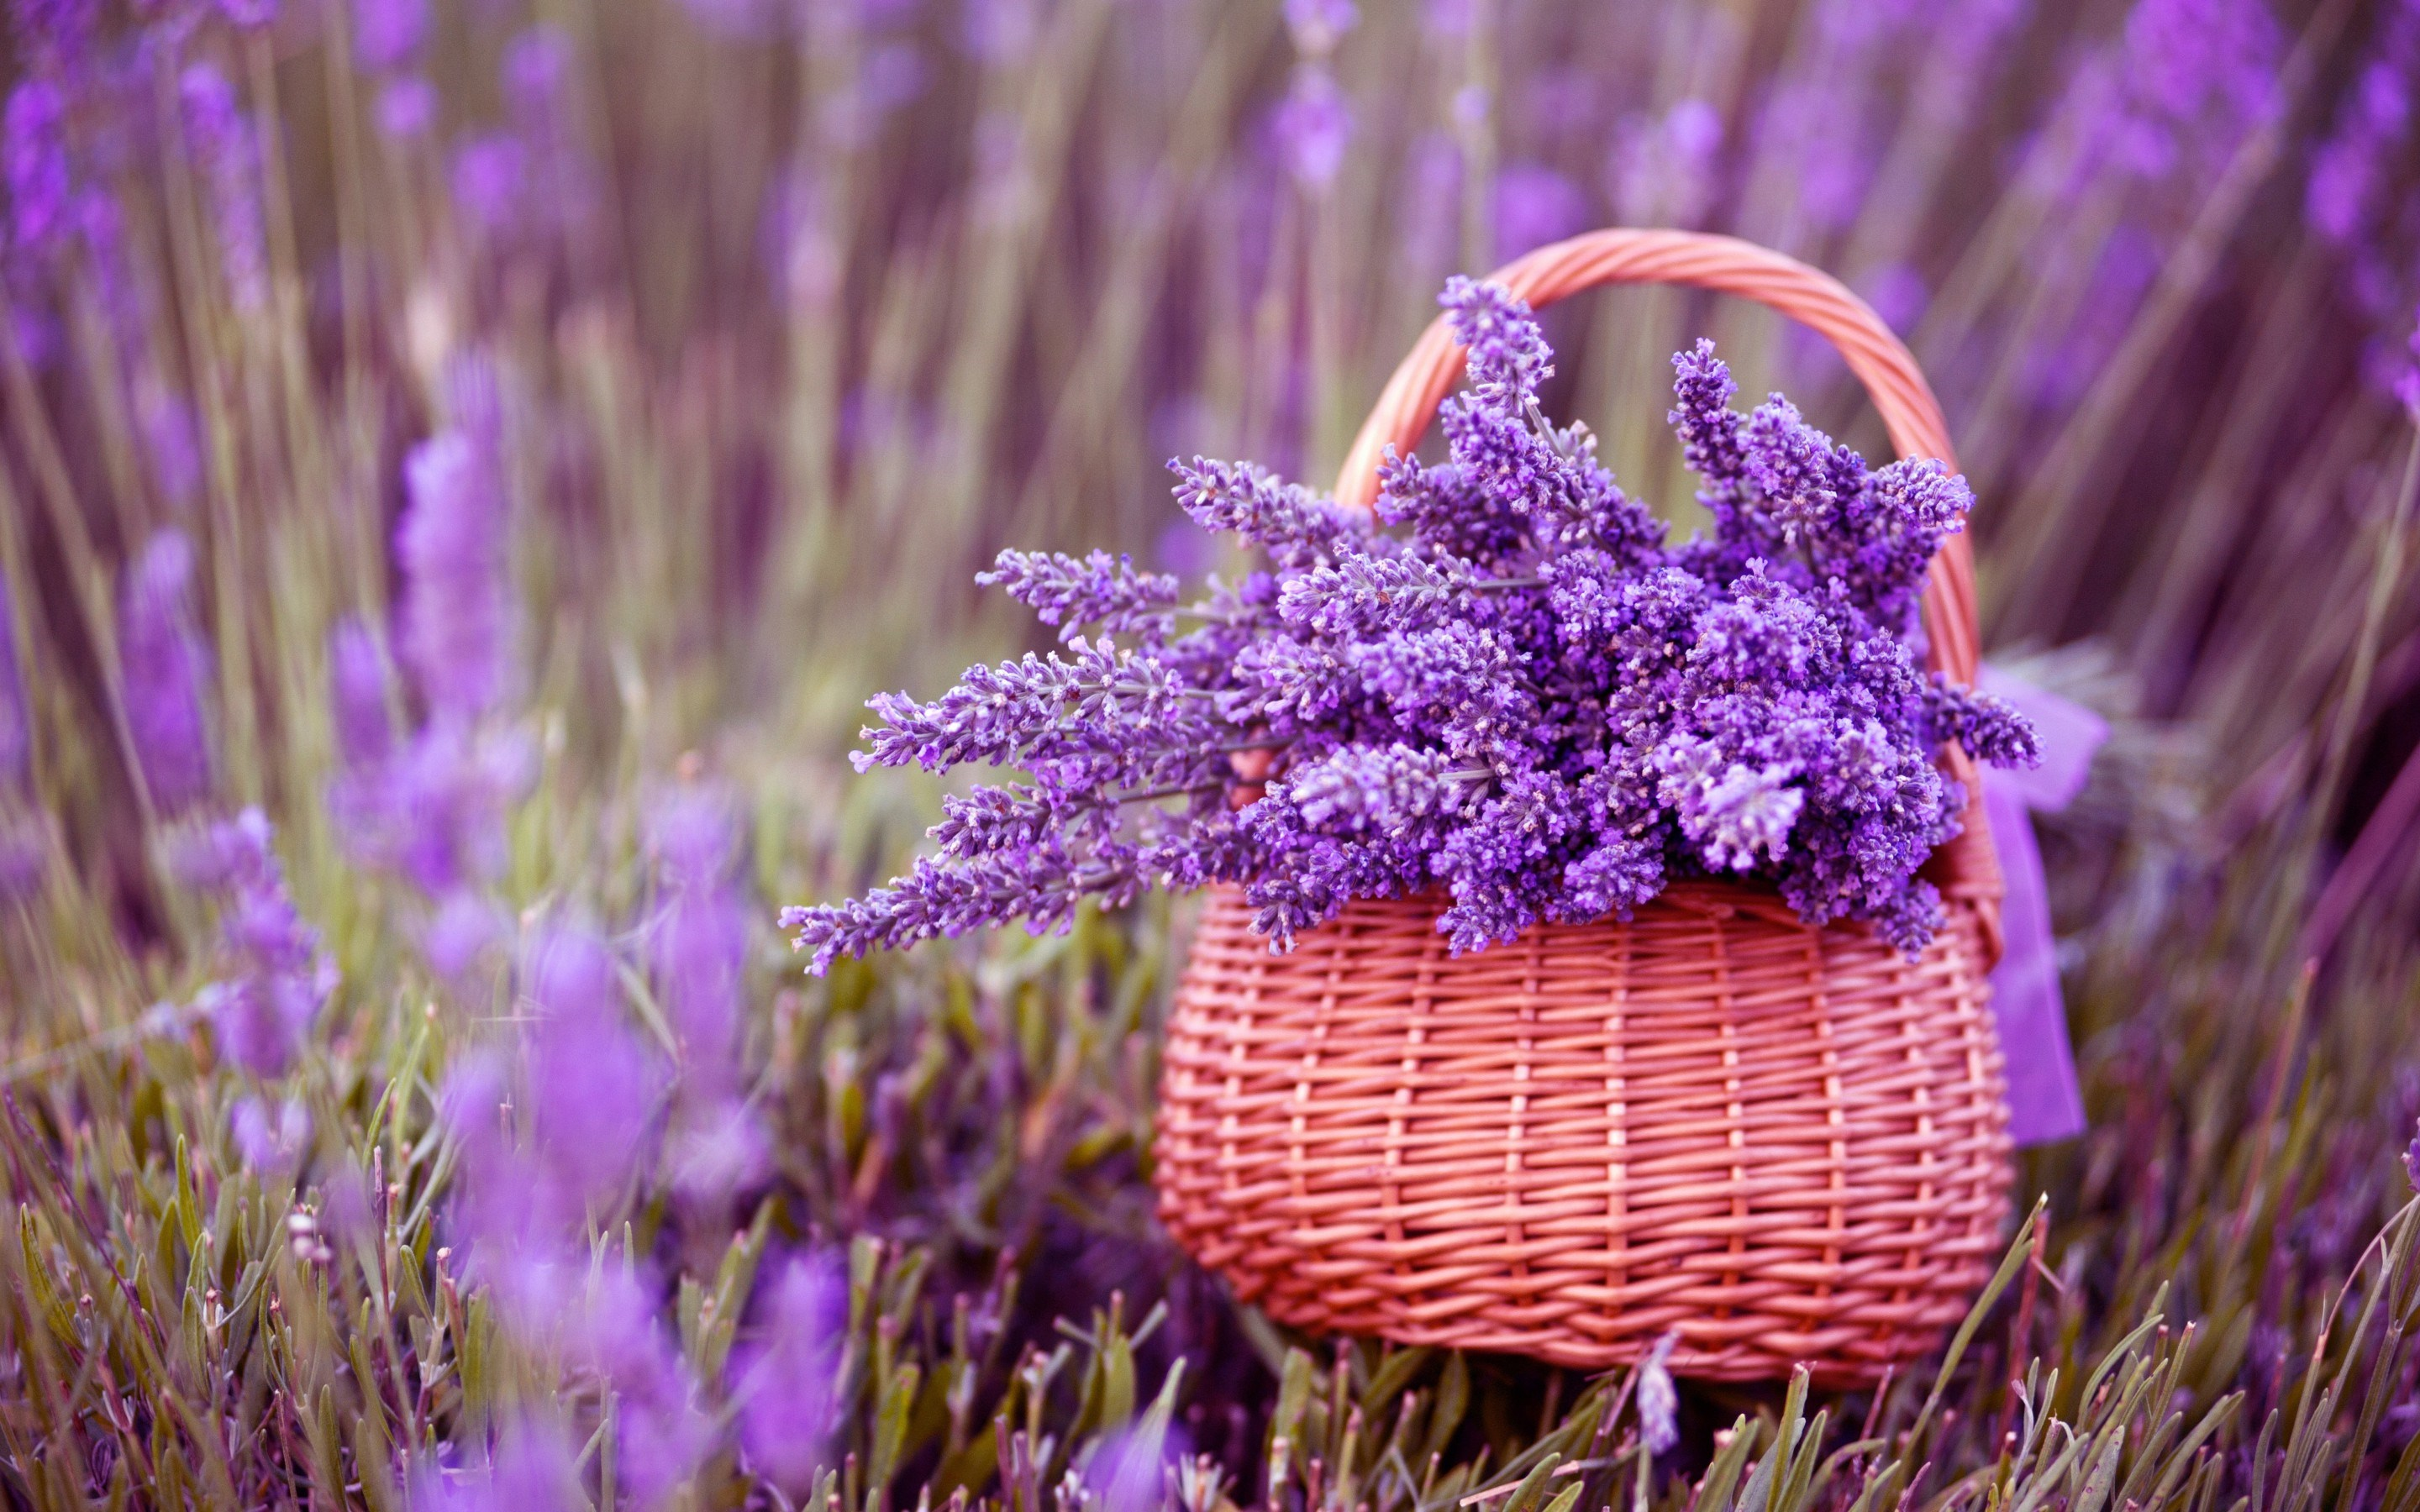 ... basket, lavender, purple lowers, spring, macro photo, fullscreen